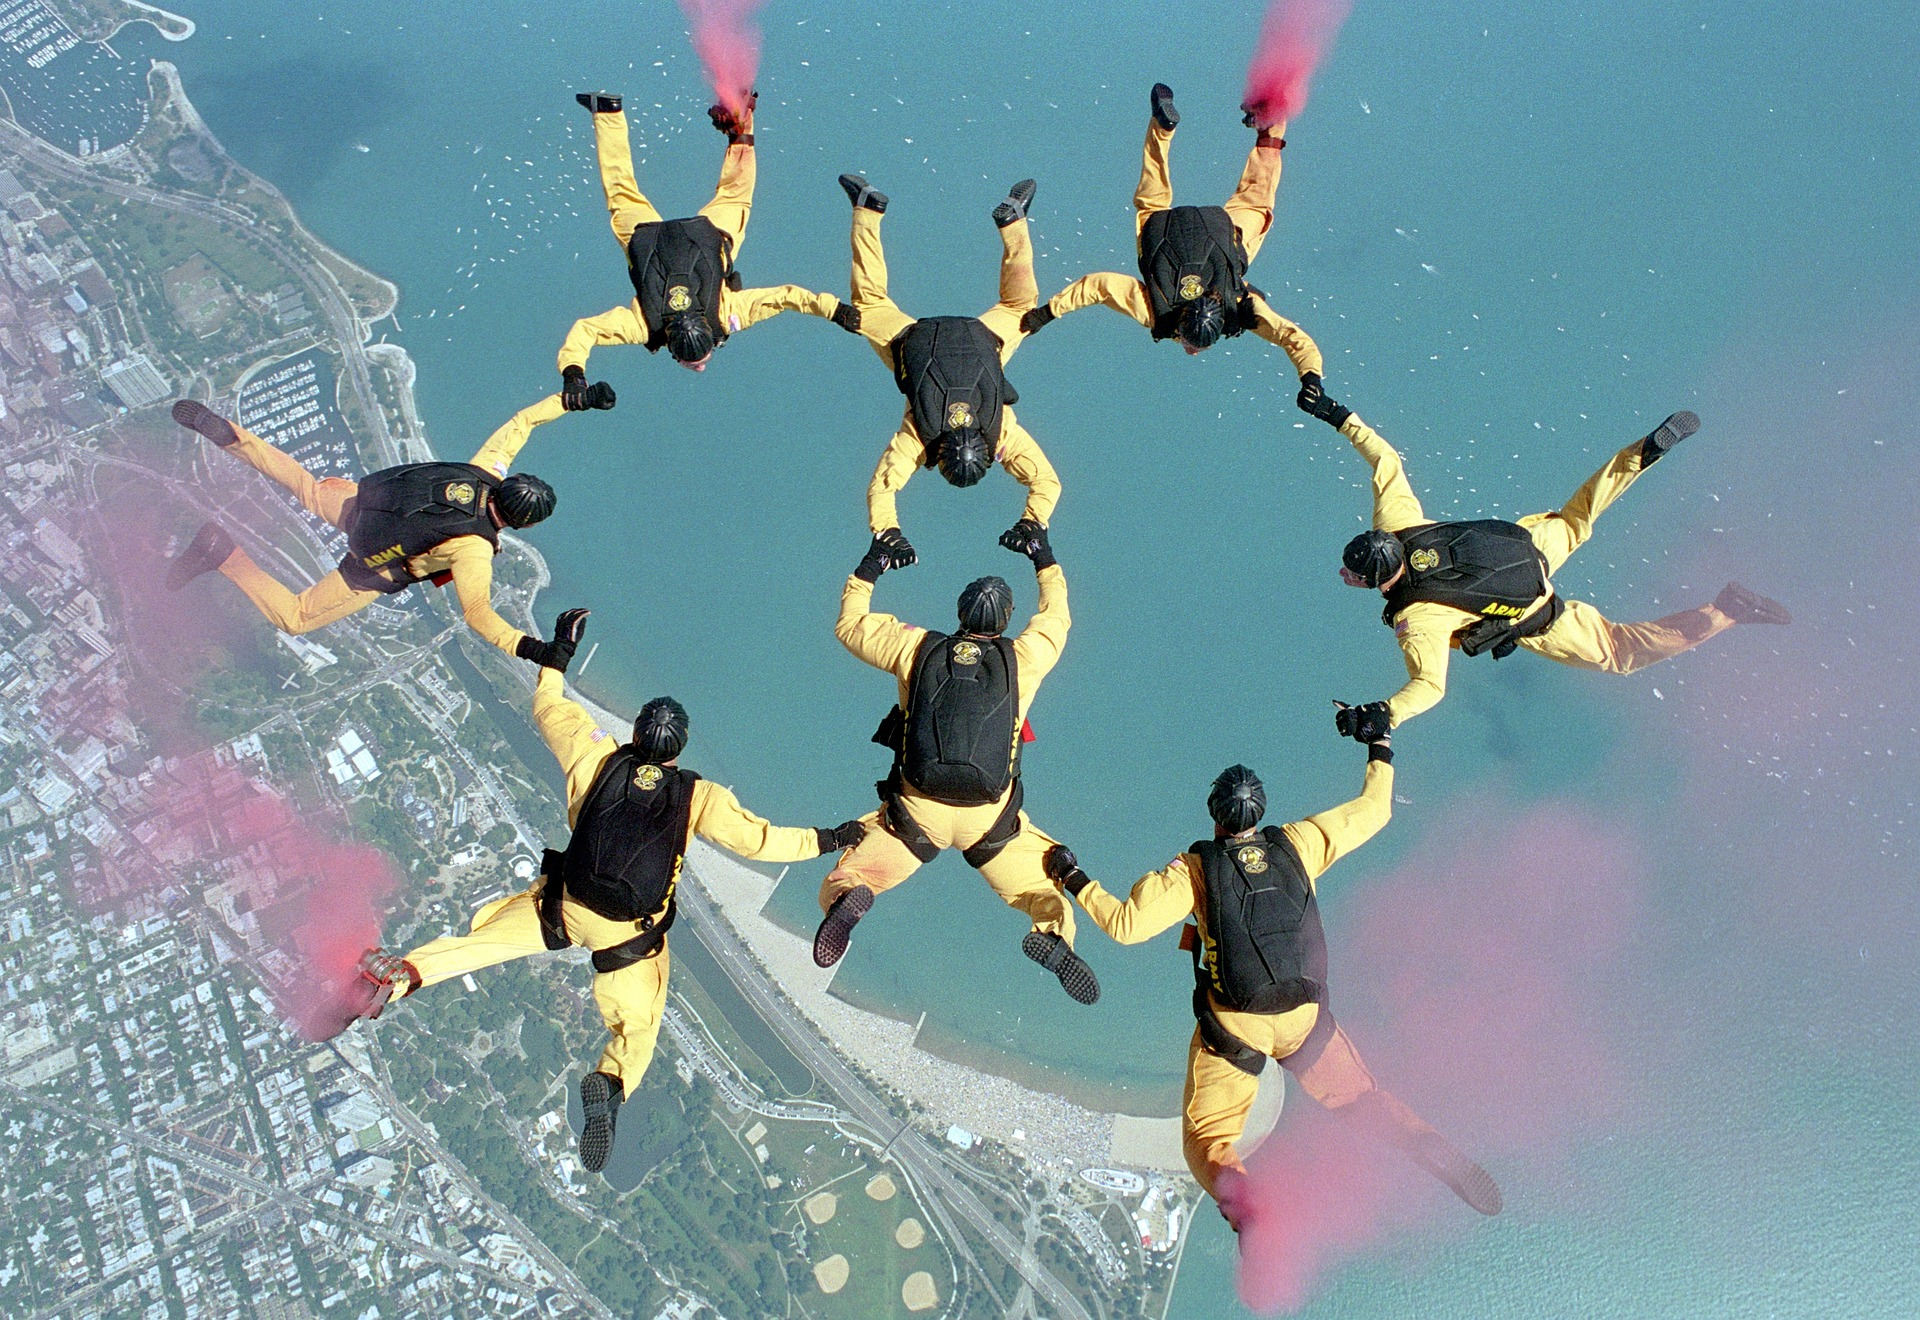 Creating HubSpot Integrations through your trusted HubSpot Integrator makes your software system perform as perfect as a flawless skydiving exhibition!